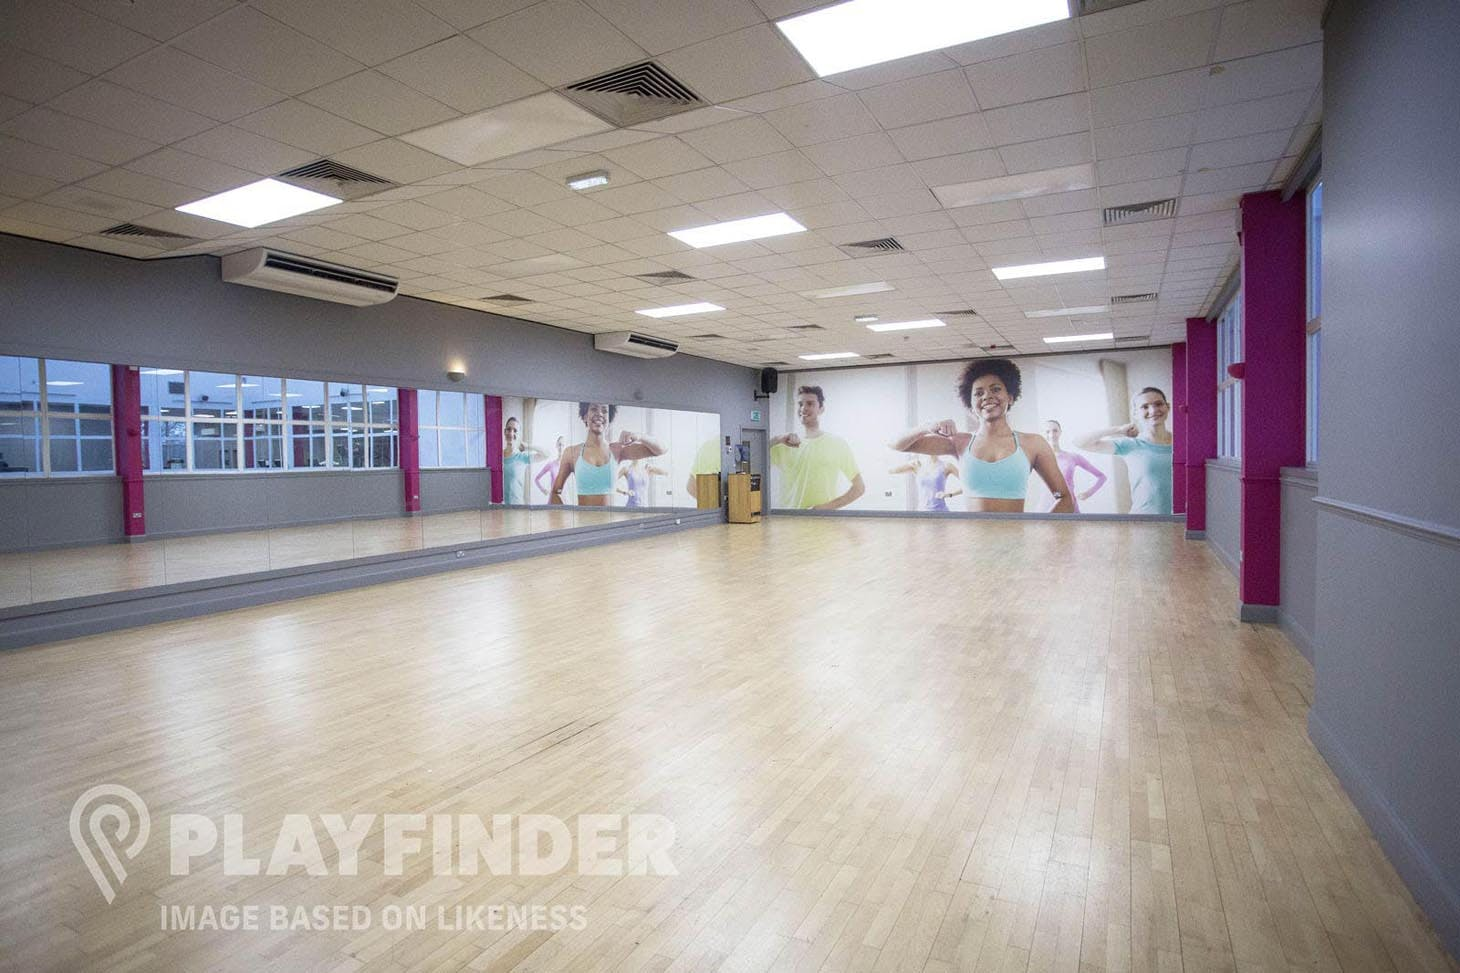 Portslade Sports Centre Studio space hire